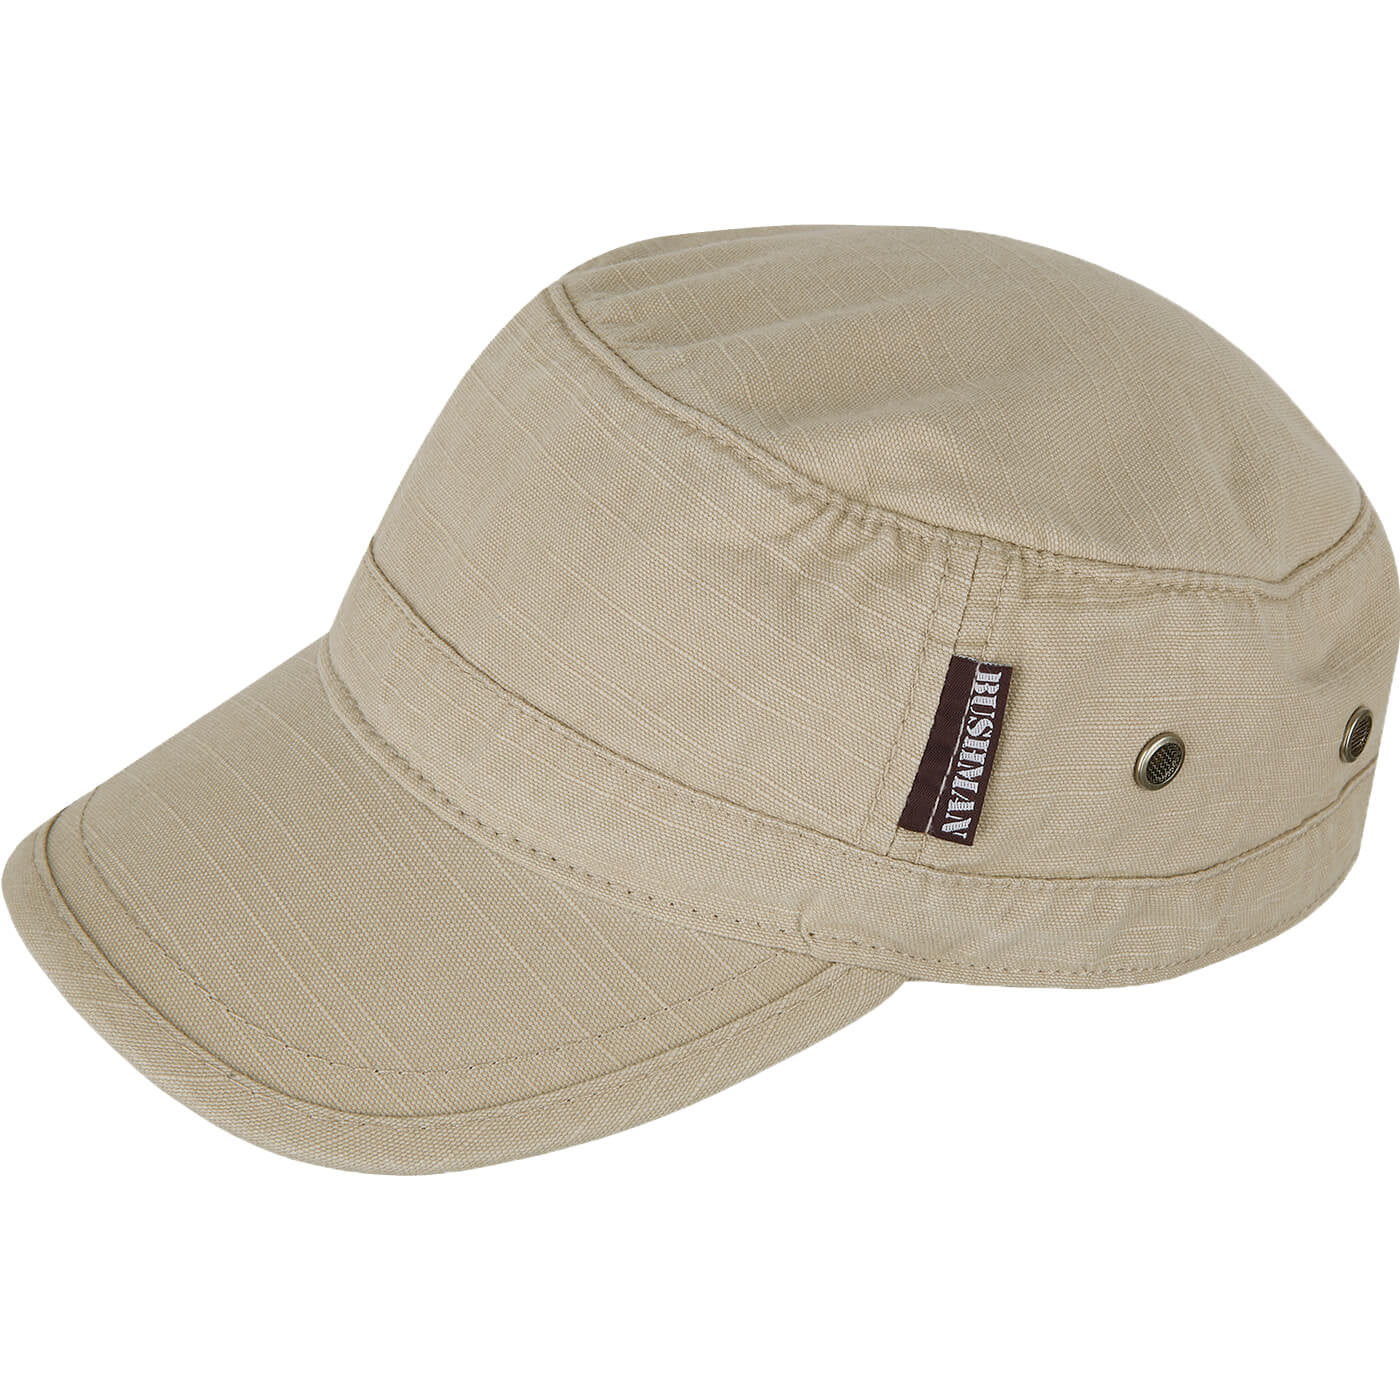 BUSHMANSHOP DAIMLER BEIGE/OLIVE/STONE/BROWN ARMY STYLE VENTILATED COTTON CAP